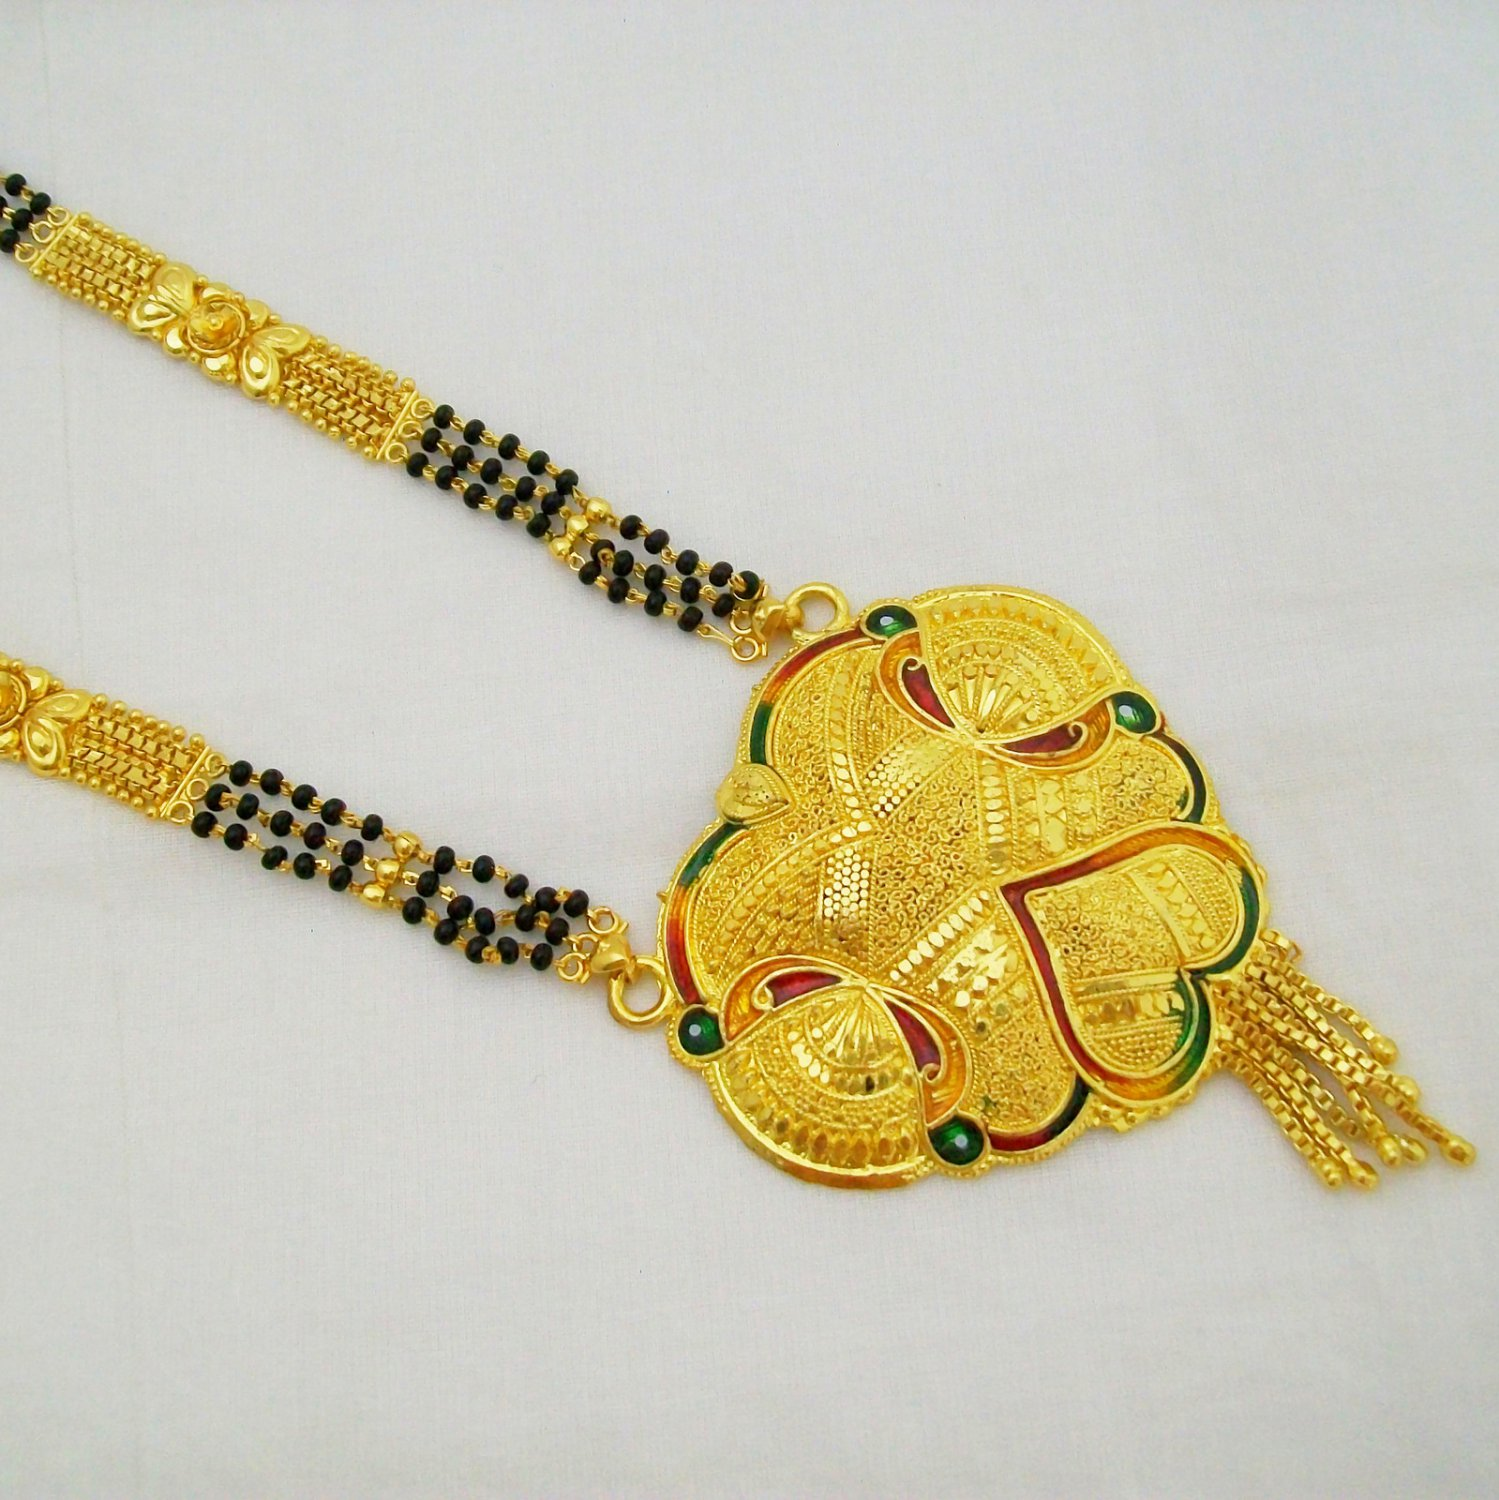 Gold Plated Mangalsutra Black Beads Chain Necklace Indian Bridal Wedding Jewelry